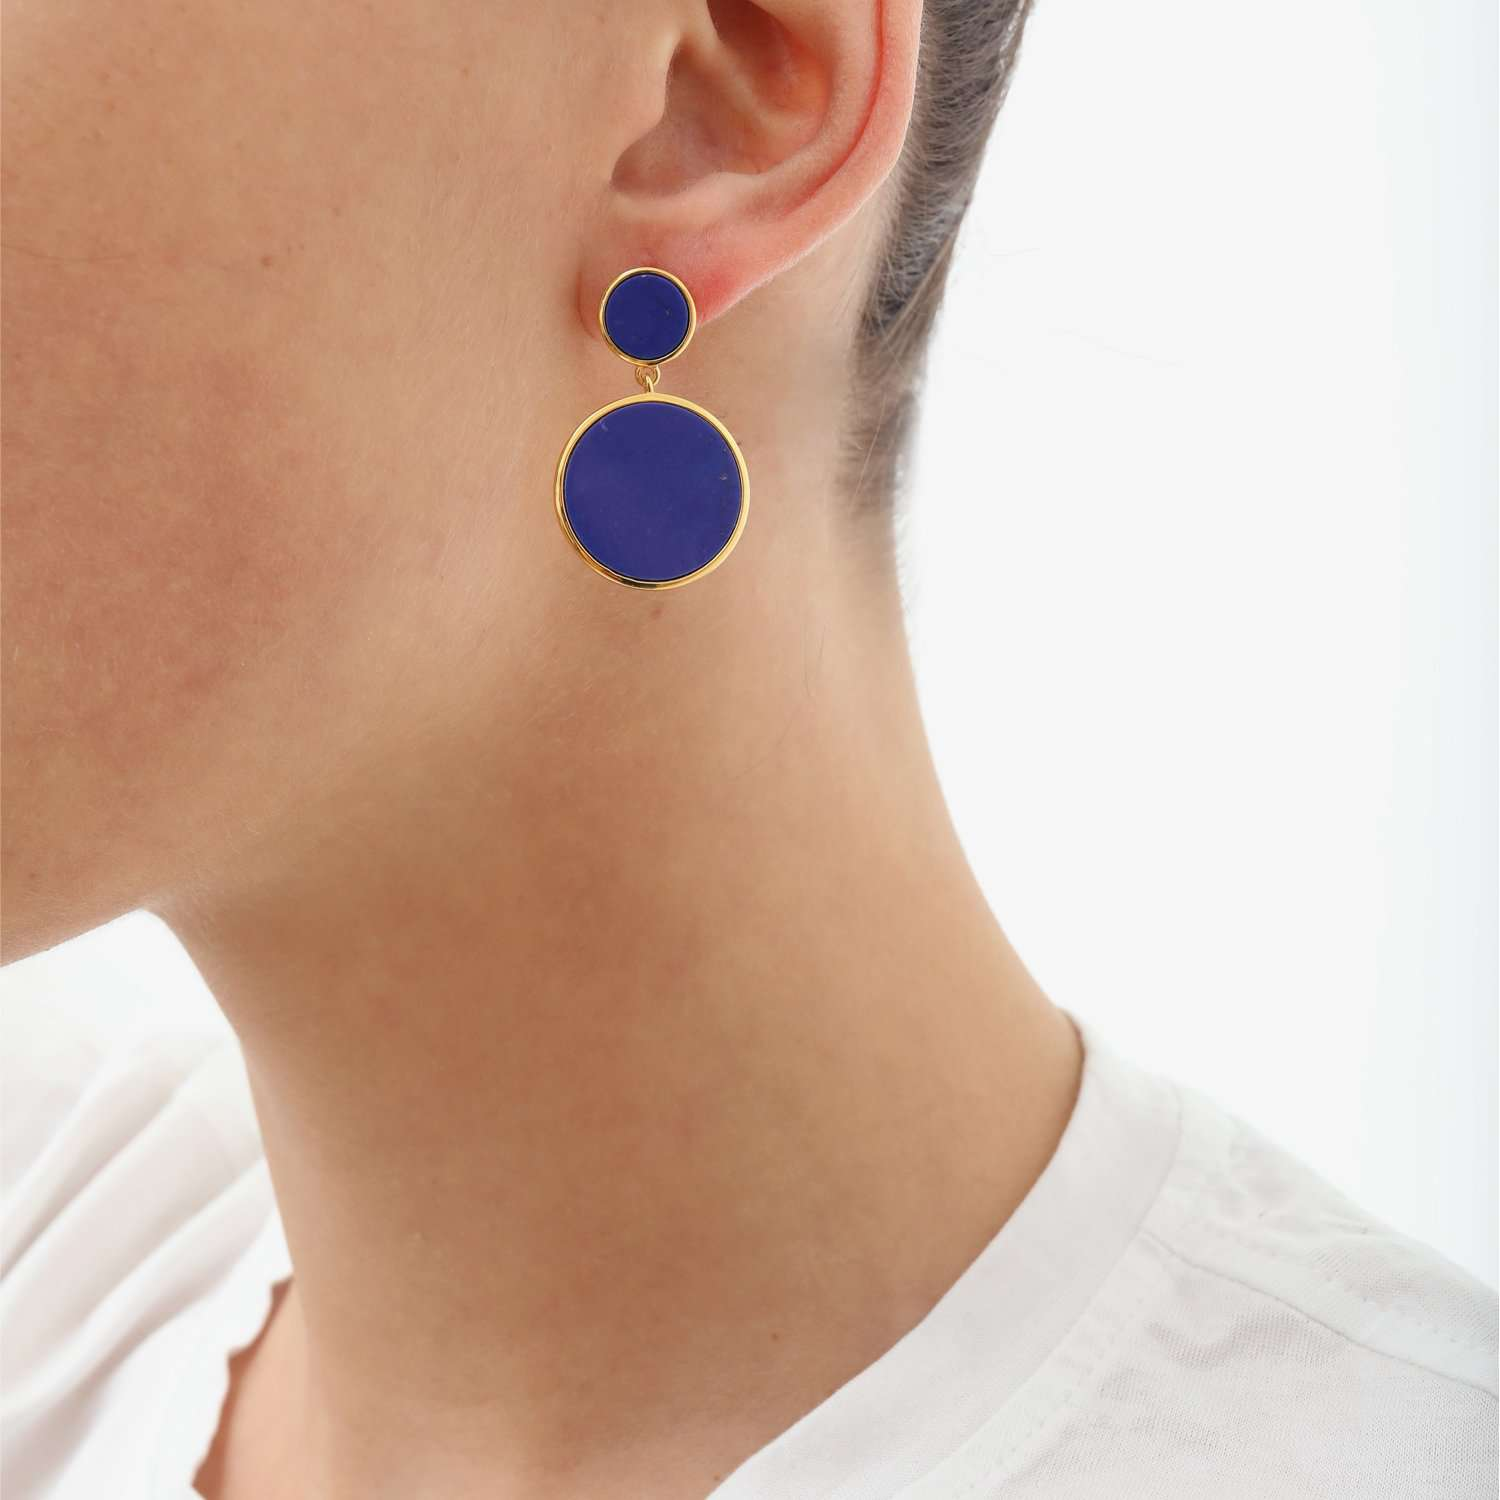 Find out capsule pair Earrings